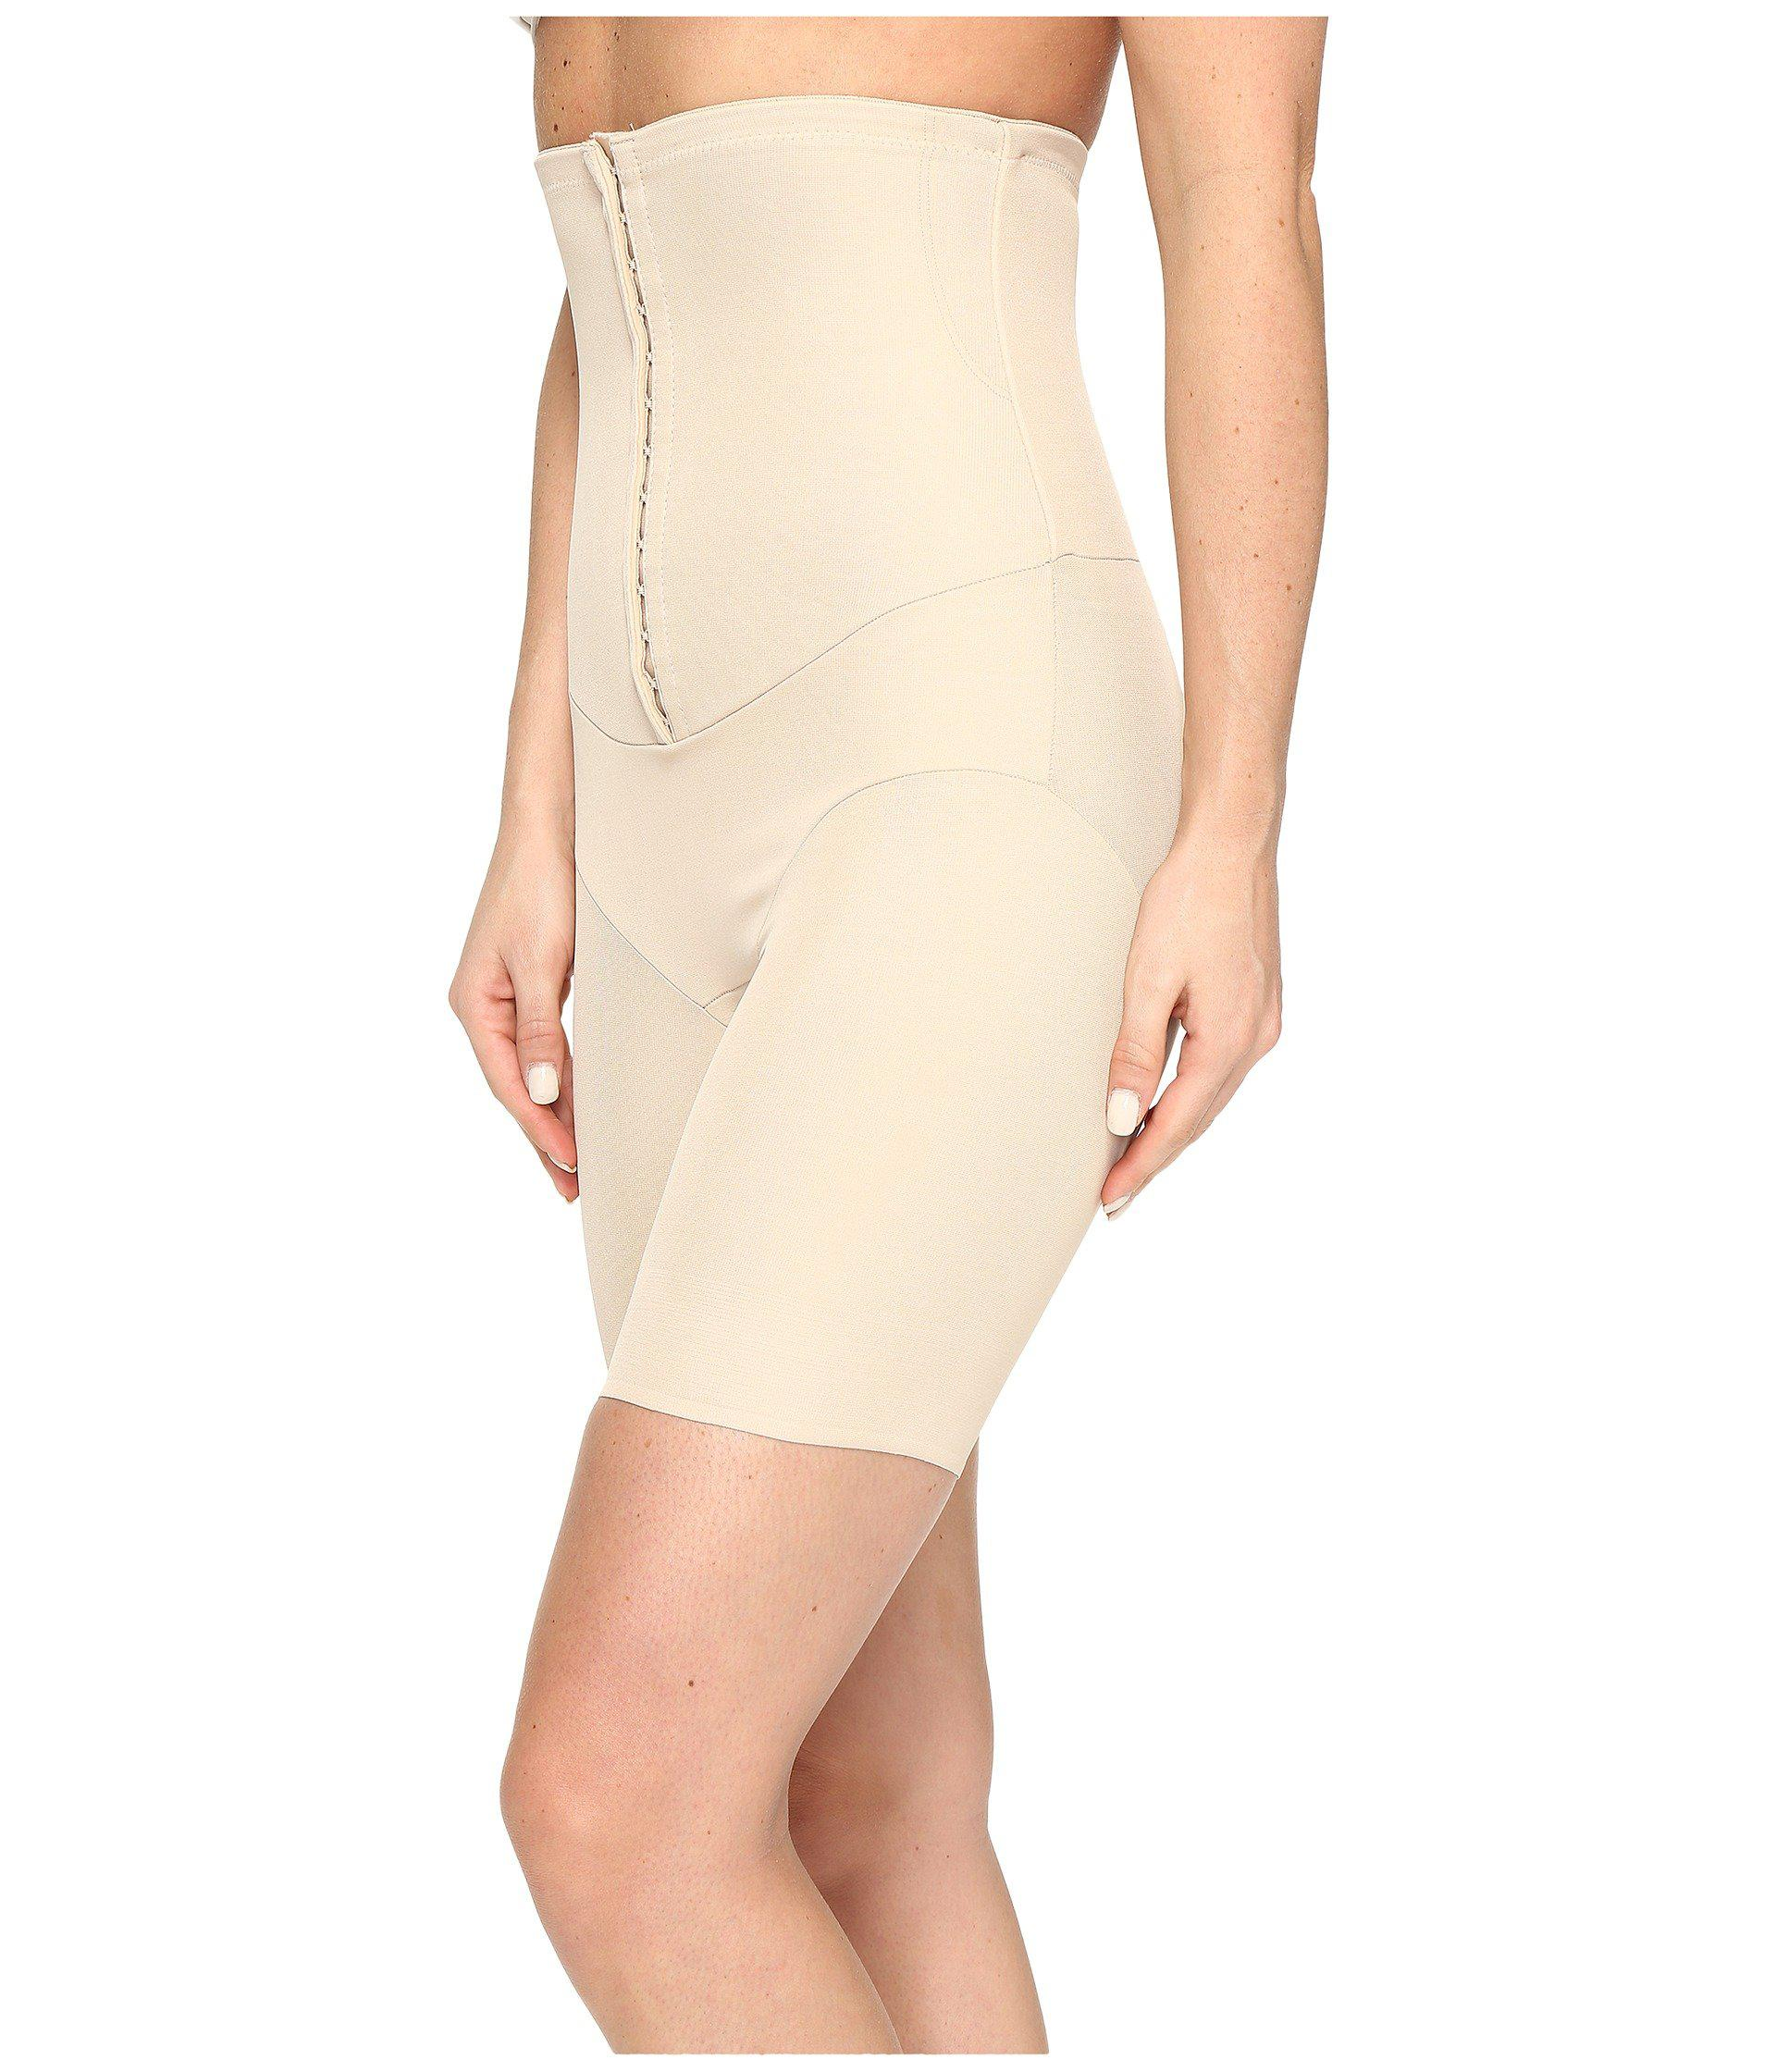 2913241d5c Lyst - Miraclesuit Inches Off Hook   Eye Waist Cinching Thigh Slimmer in  Natural